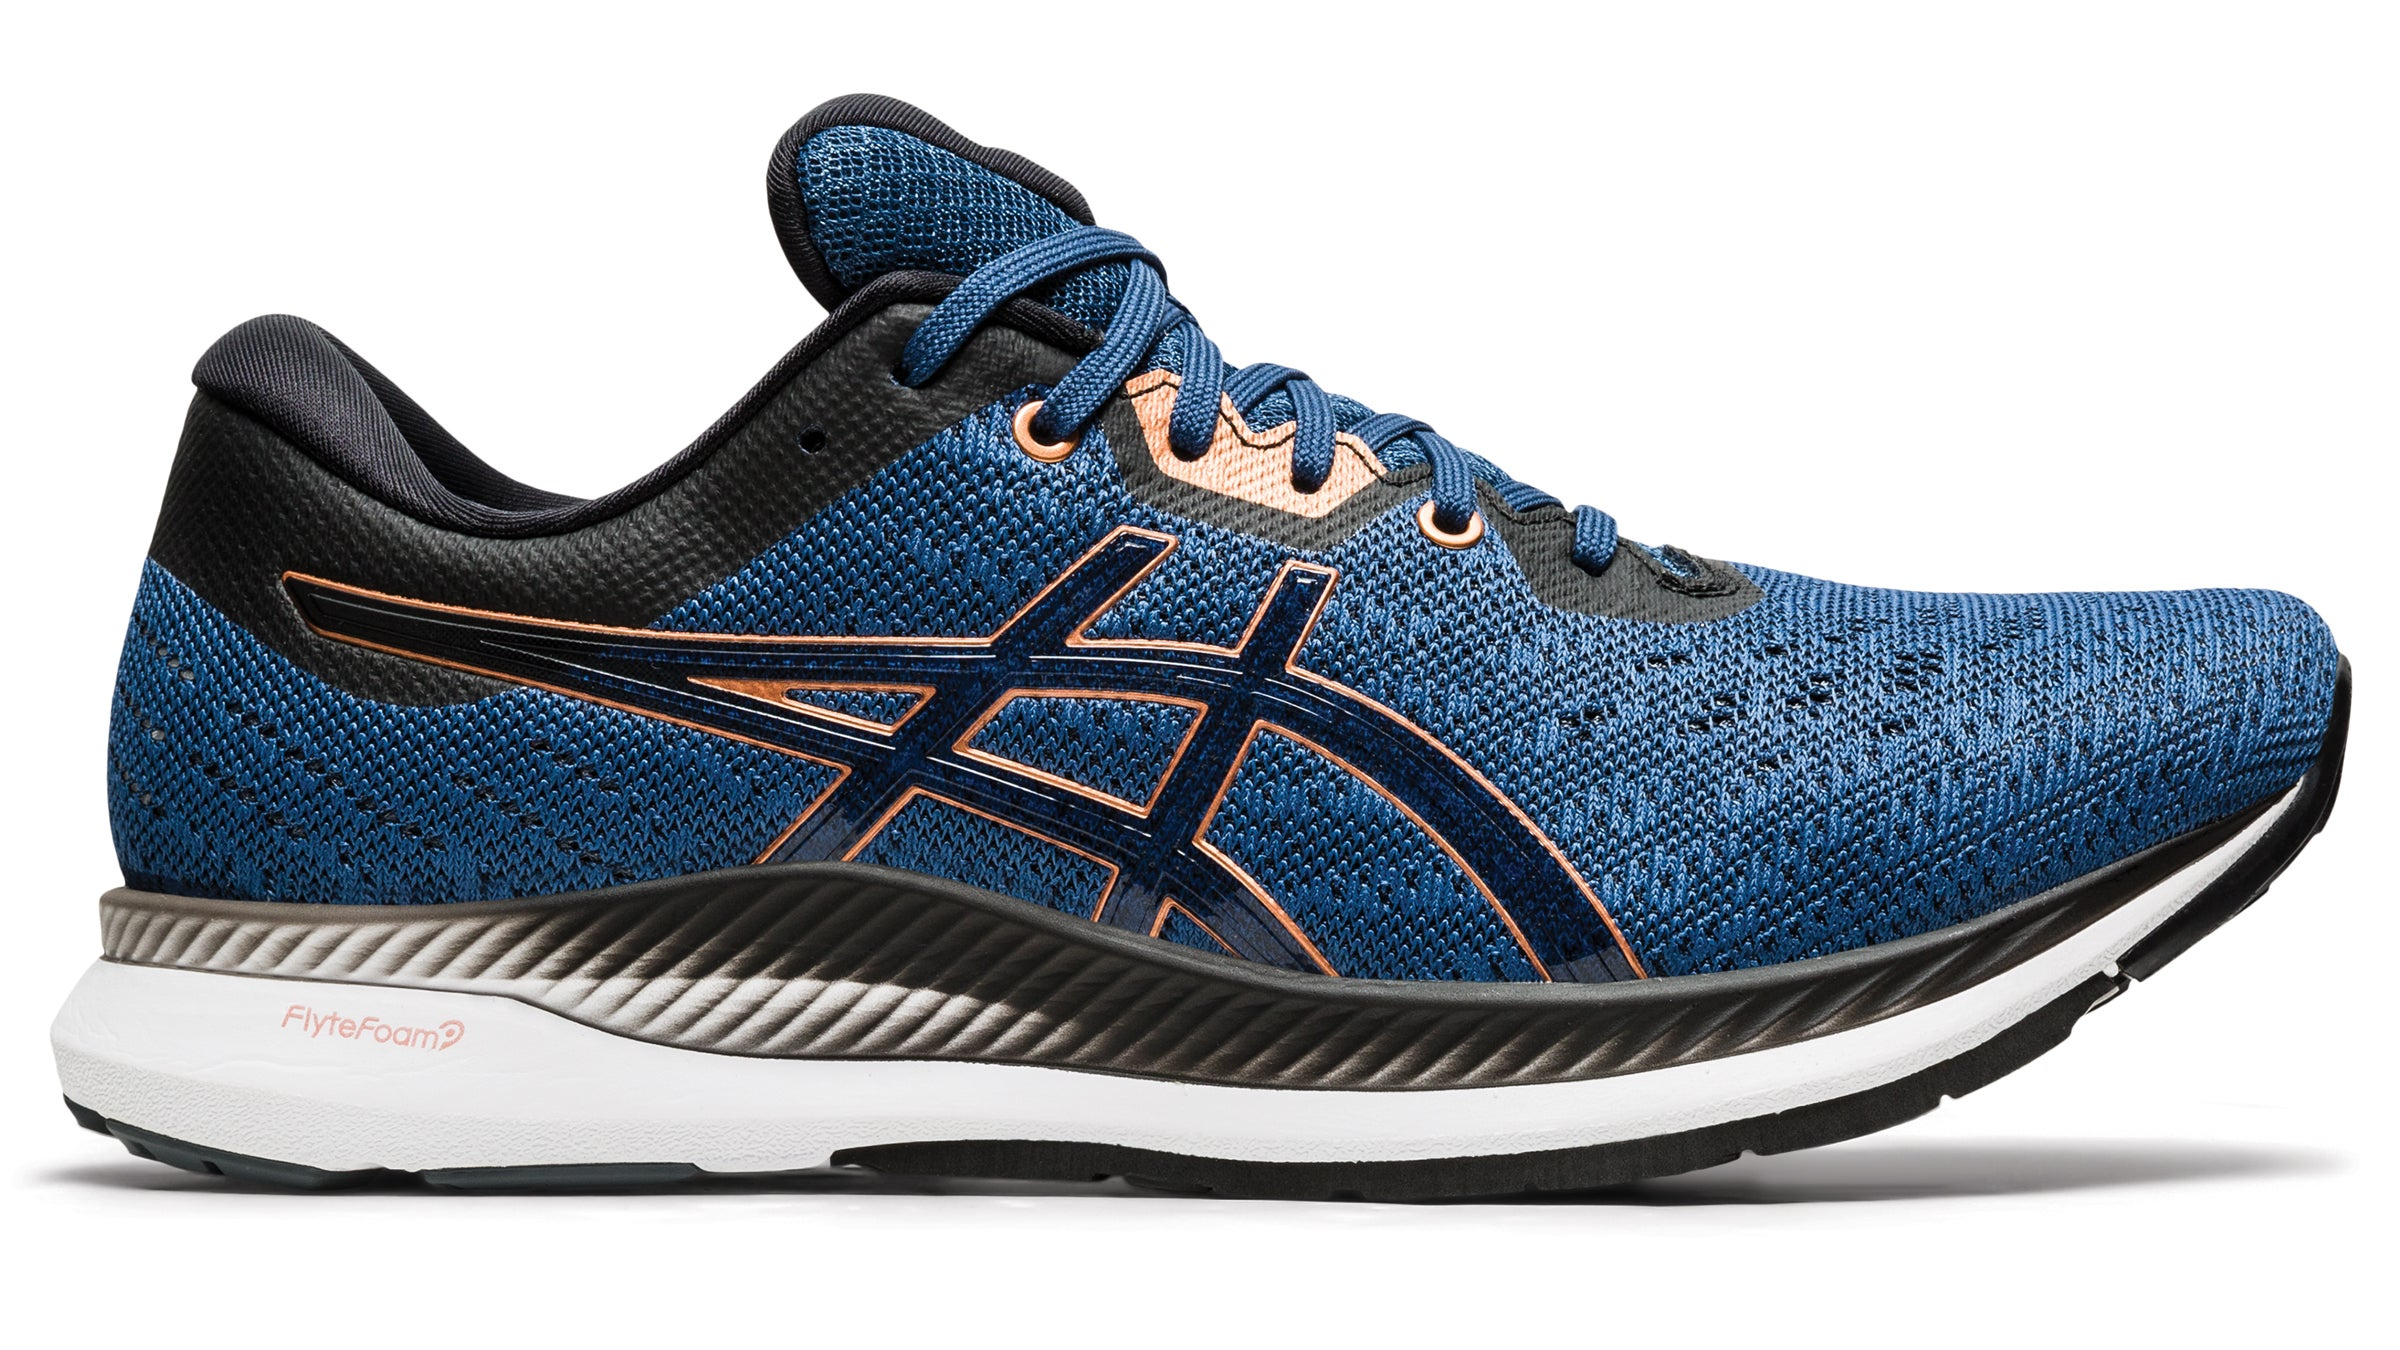 Asics Carbon-Plated Shoes